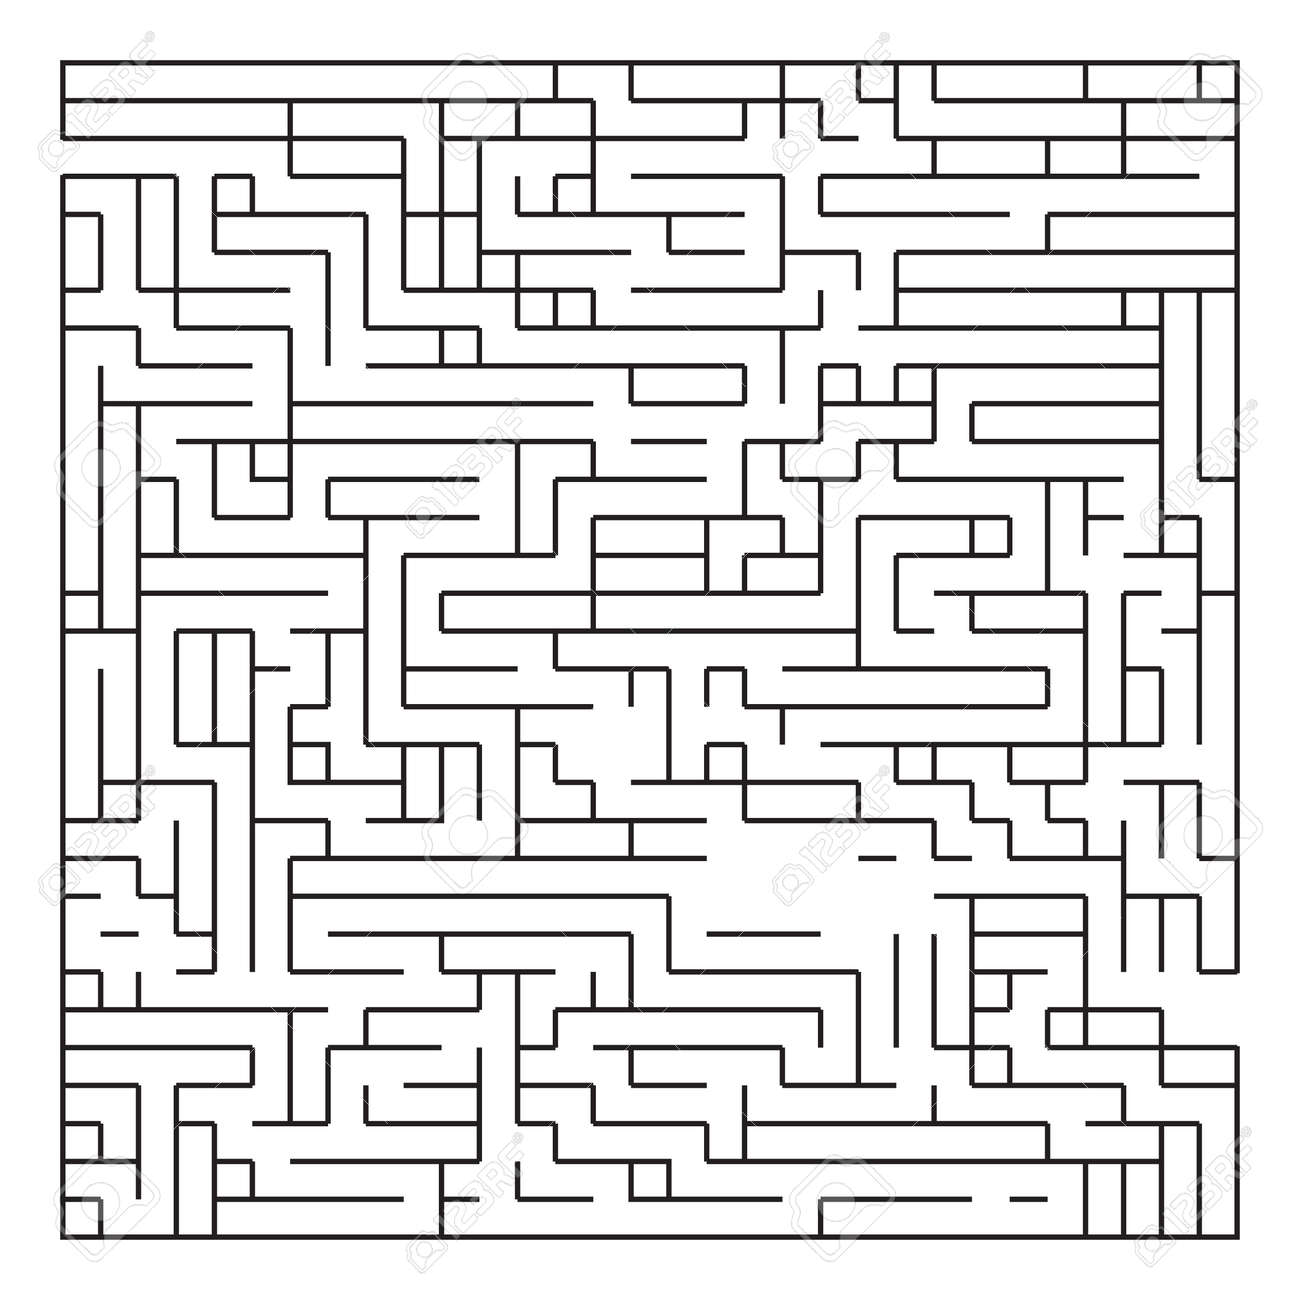 Labyrinth With Entry And Exit Vector Game Maze Puzzle With